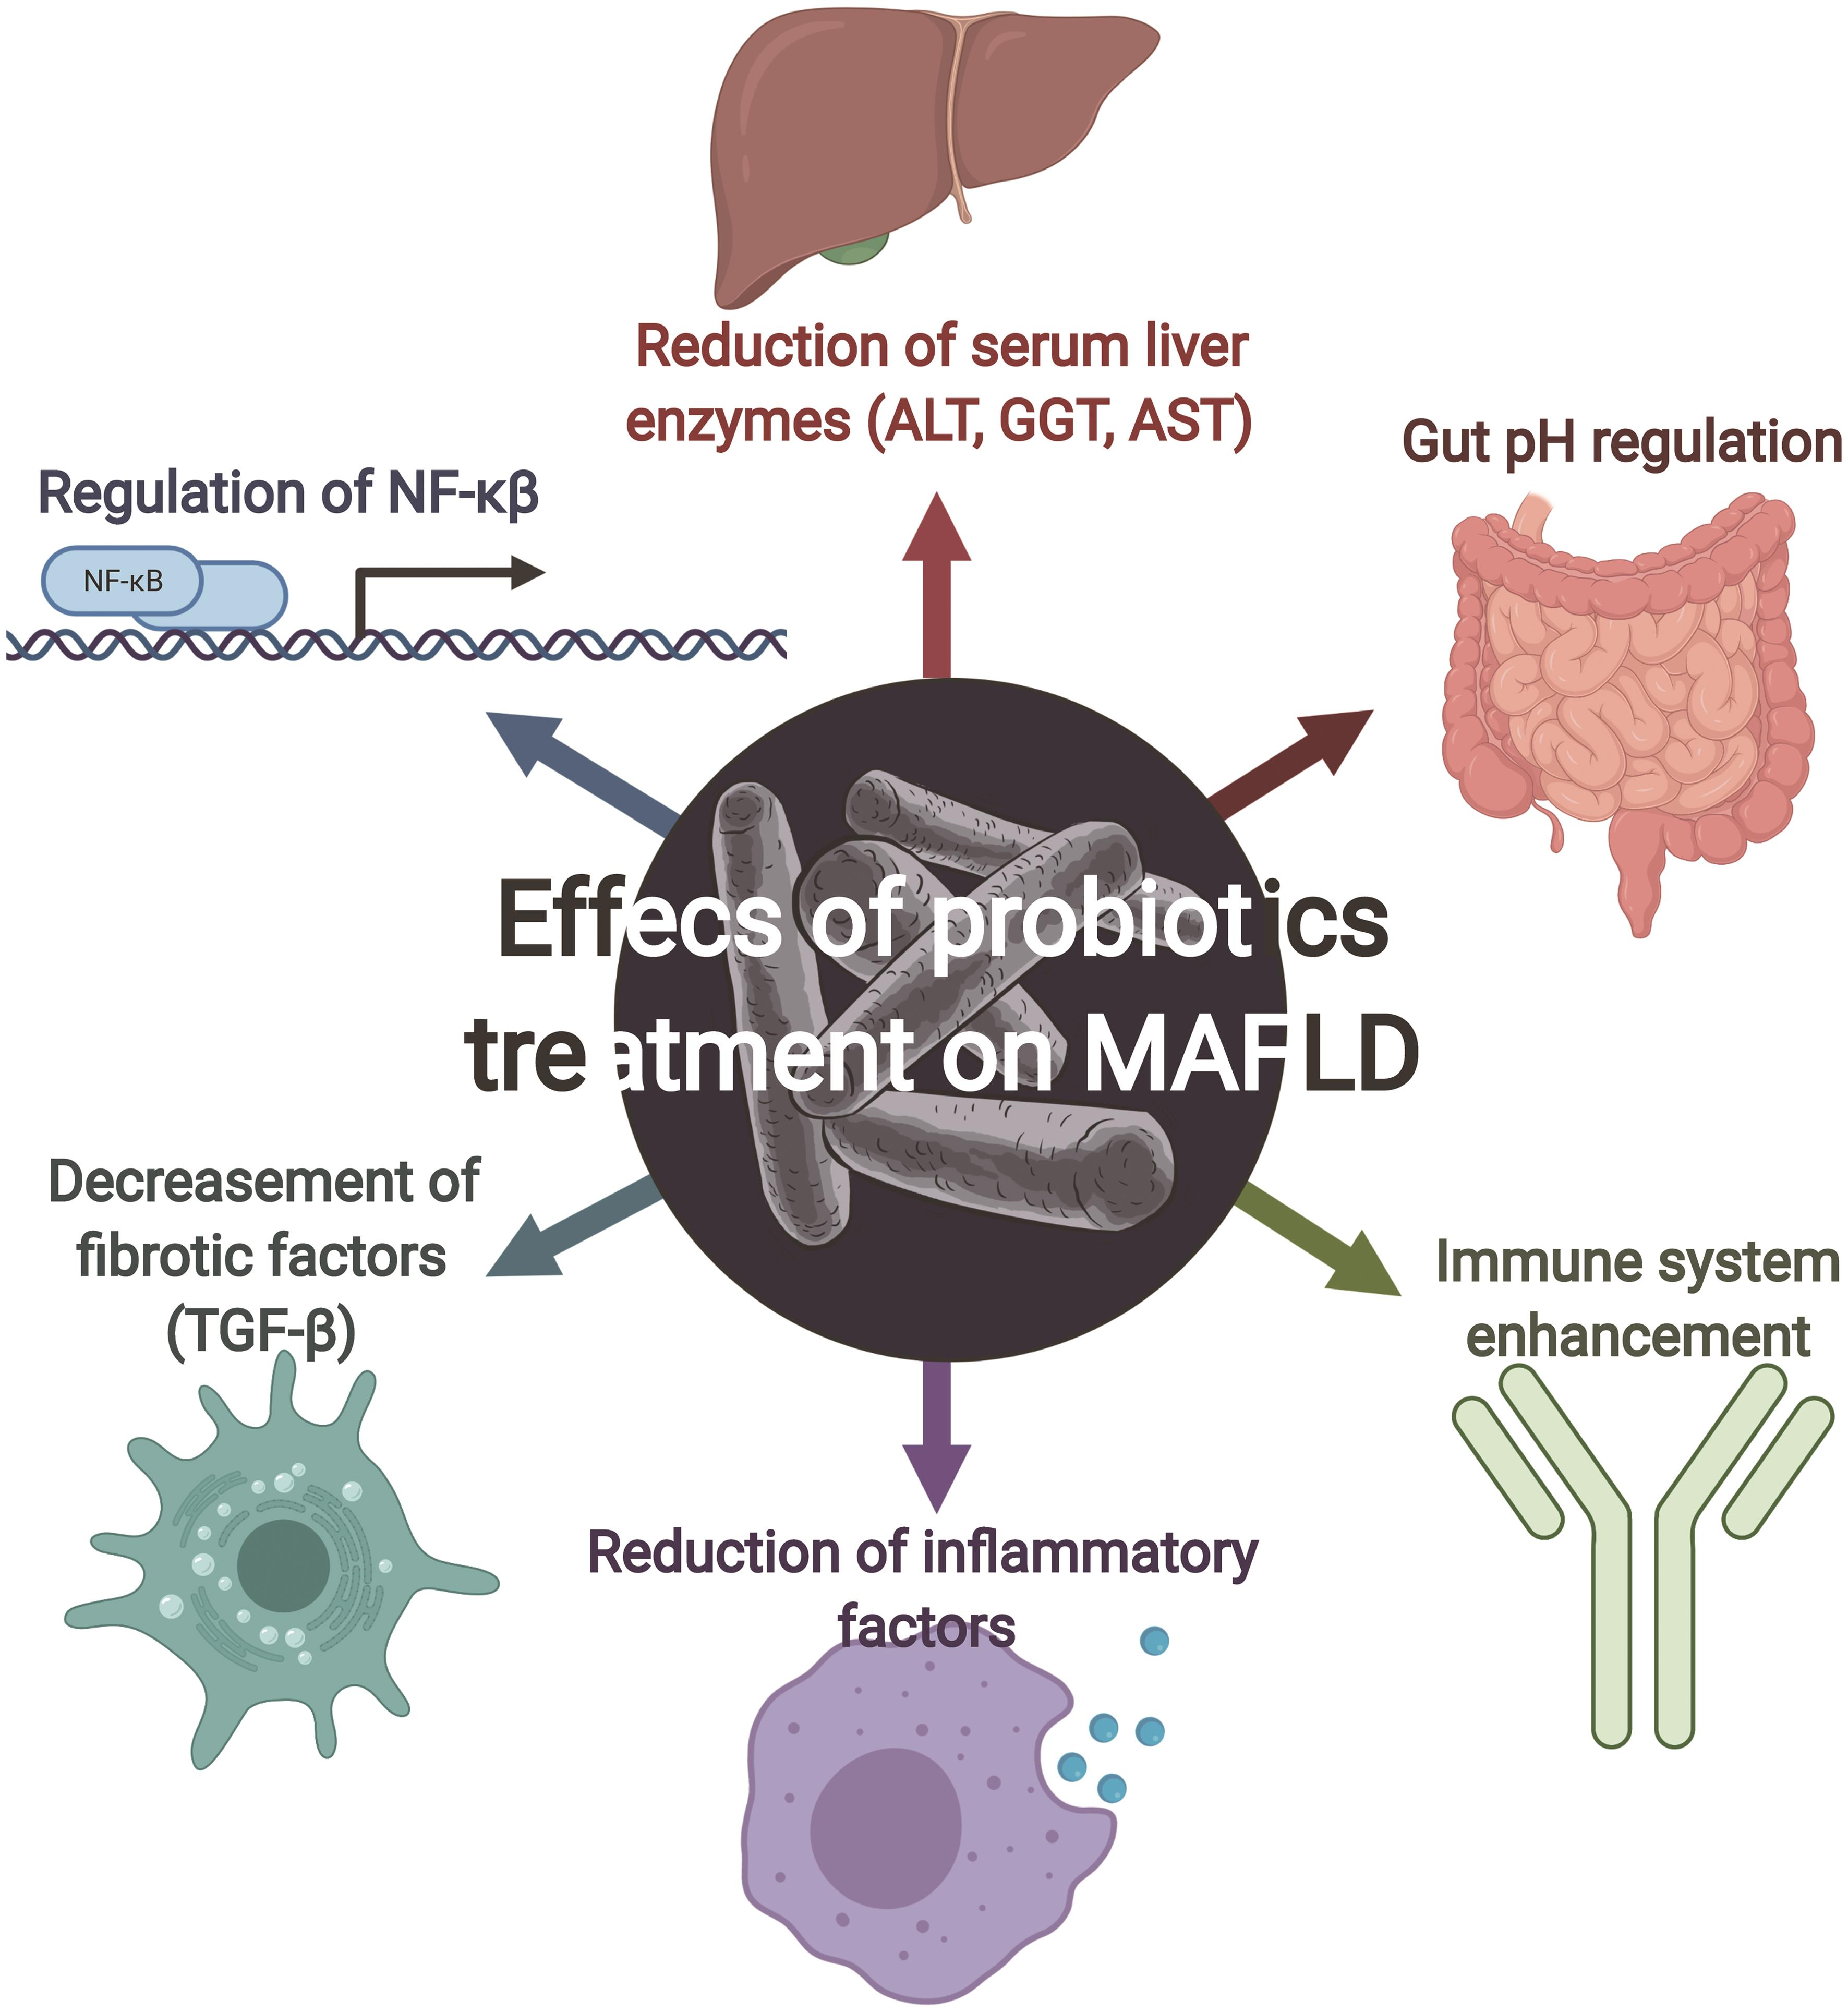 Effects of probiotic treatment on MAFLD.